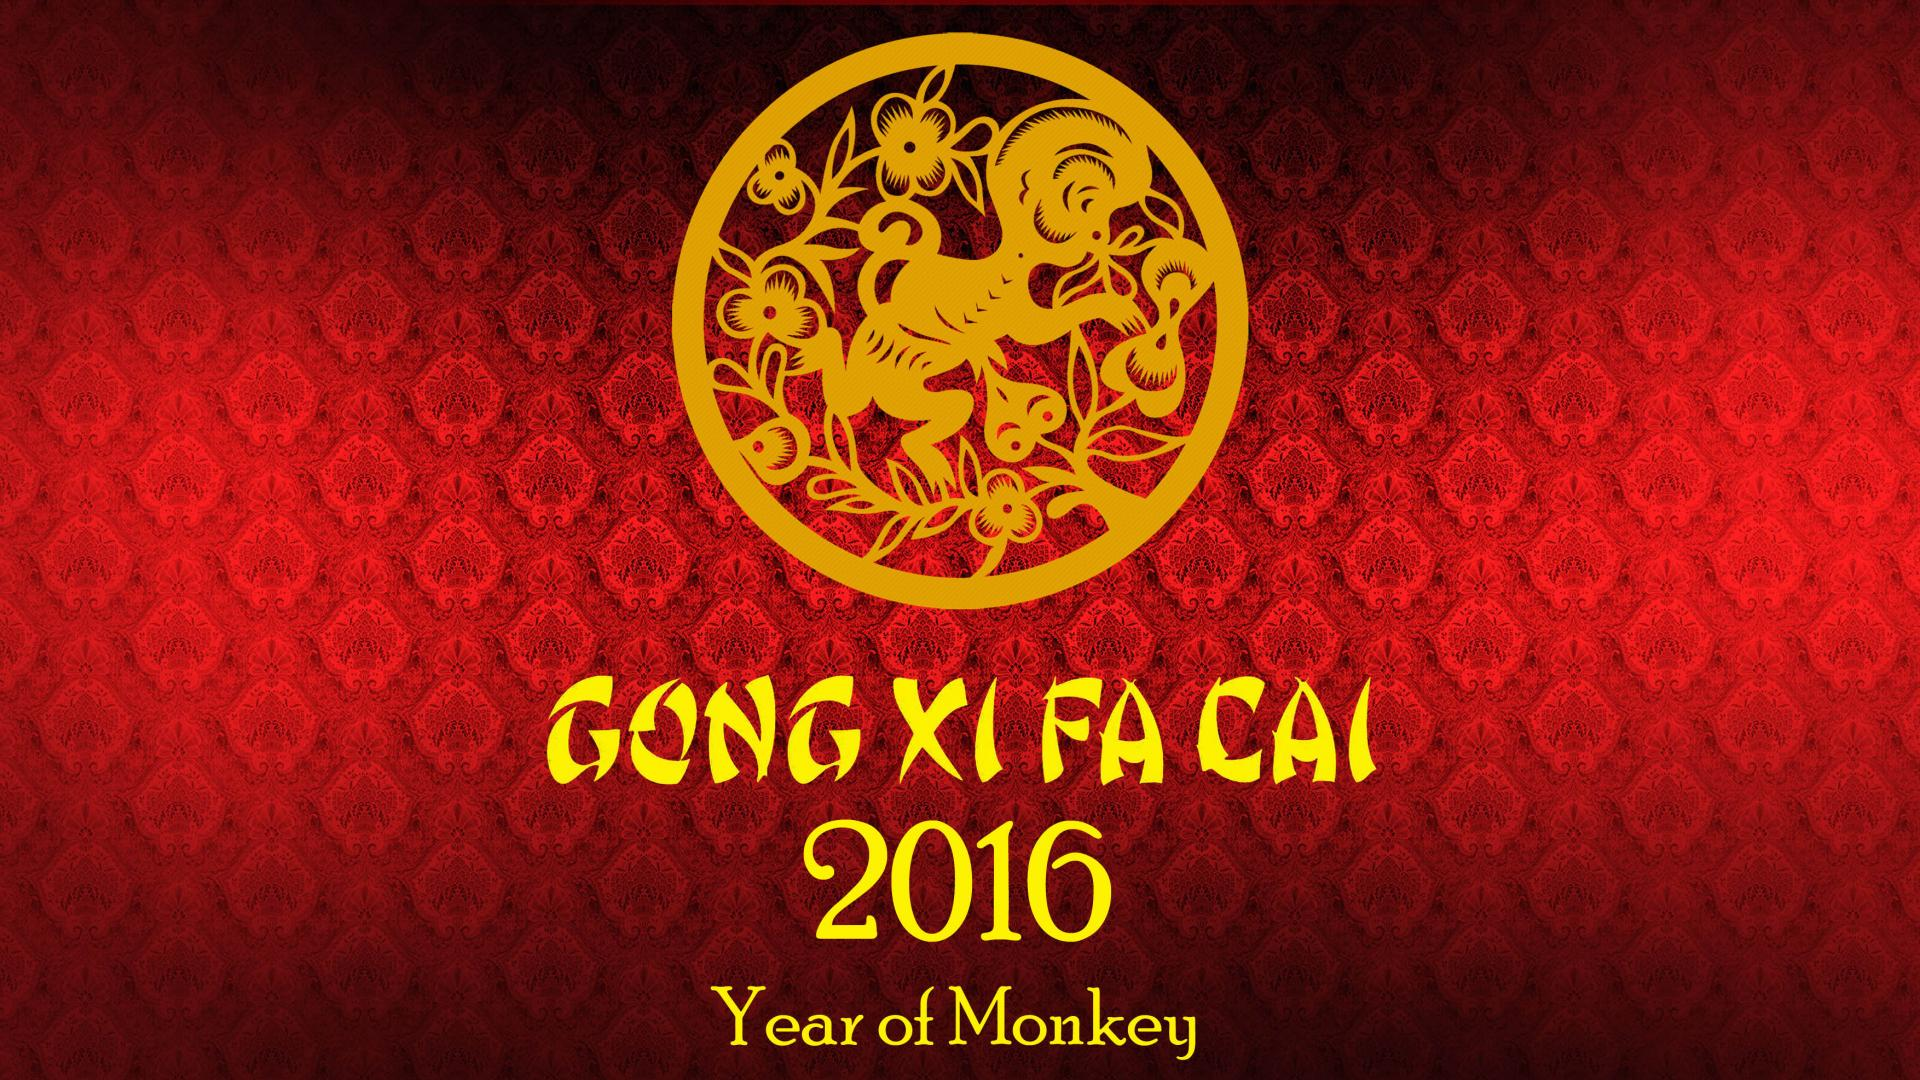 ... Fat Cai – Happy Chinese New Year 2016 Wallpaper – Year of Monkey